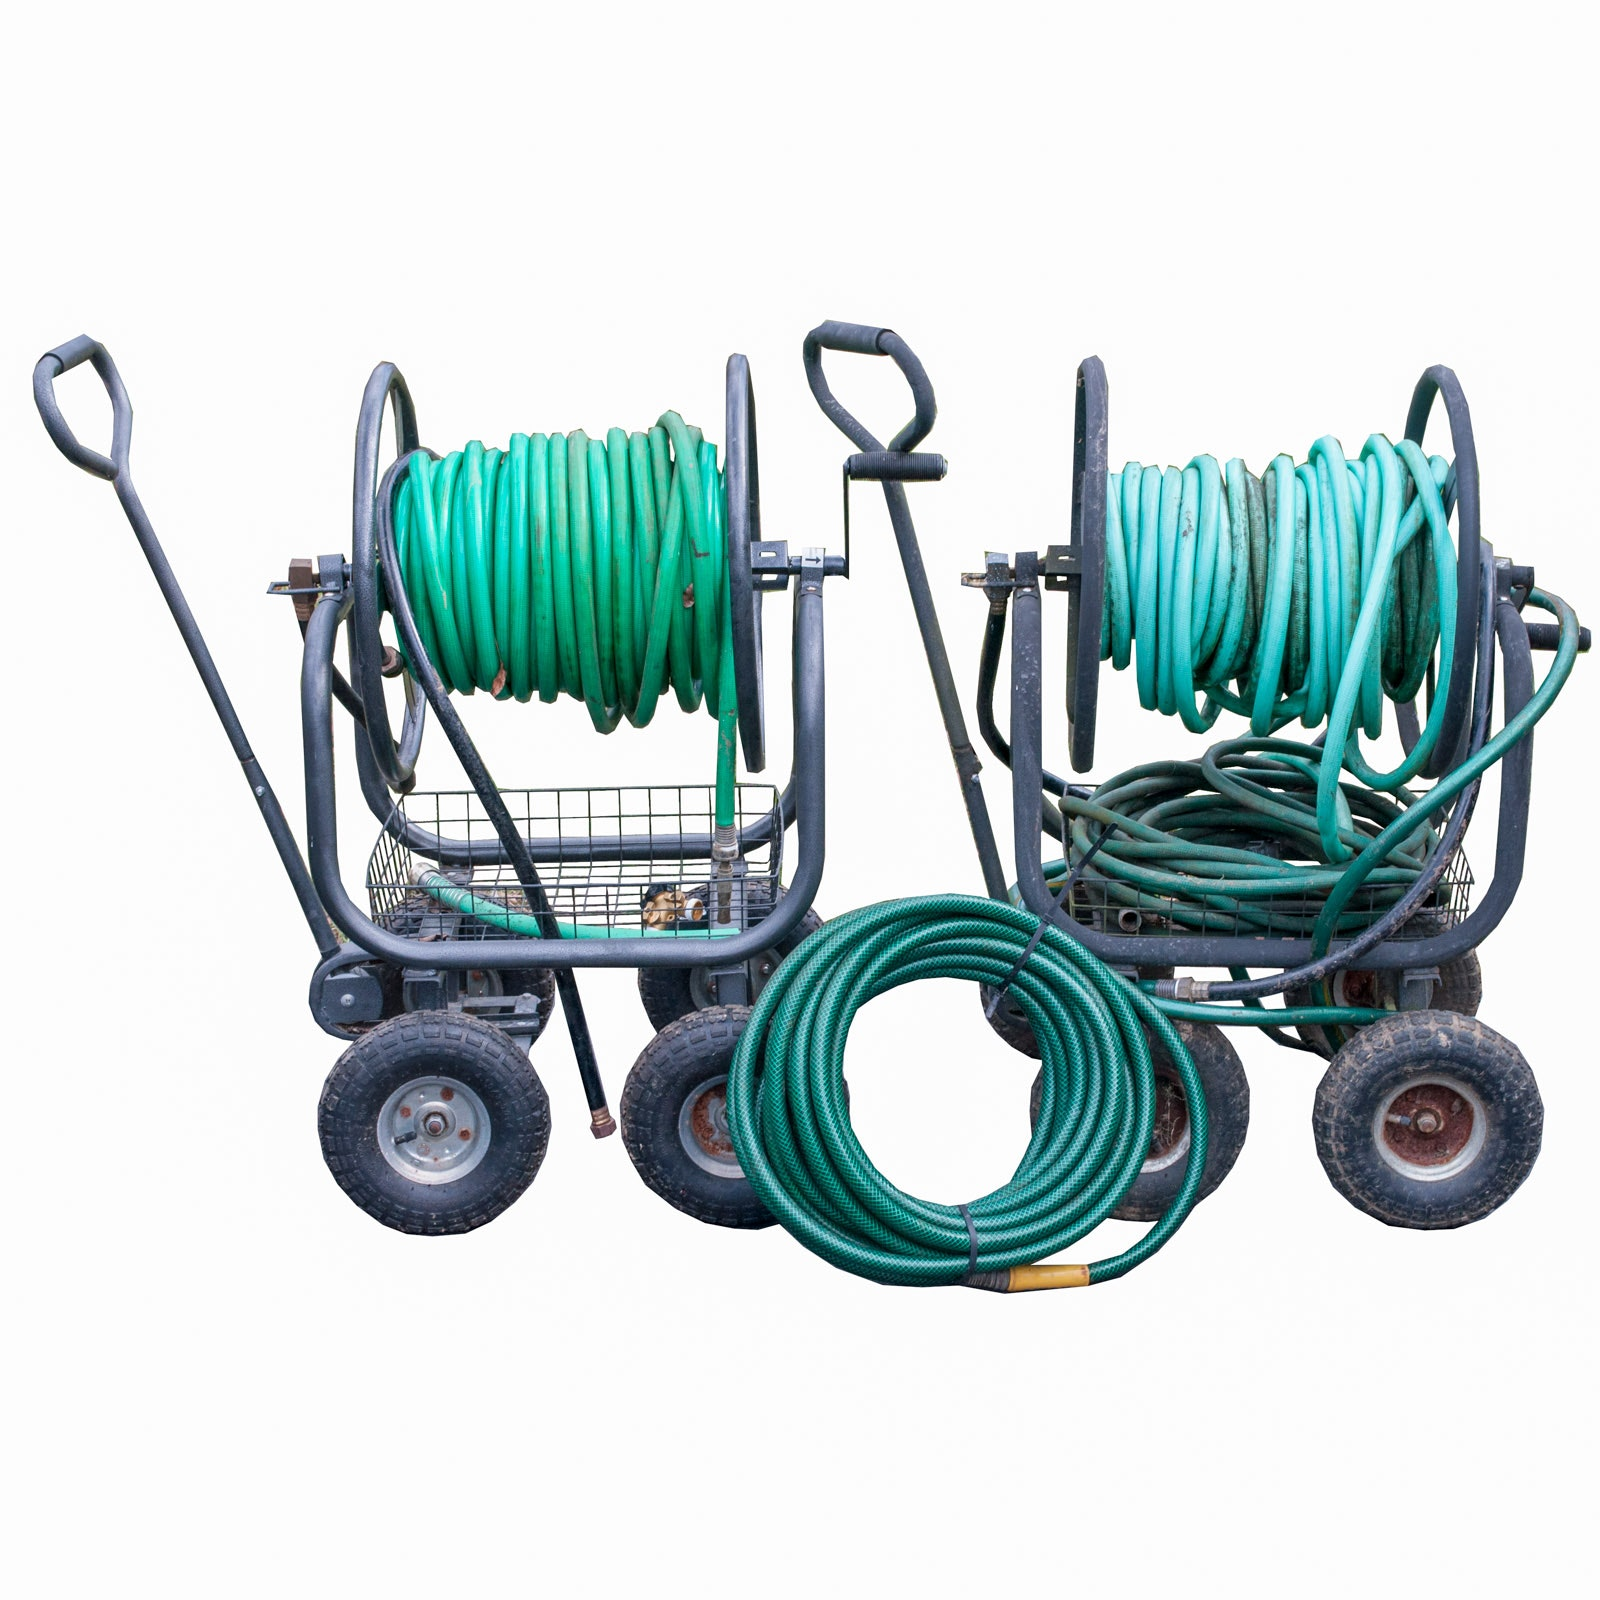 Pair of Water Hose Reel Carts by Rankam